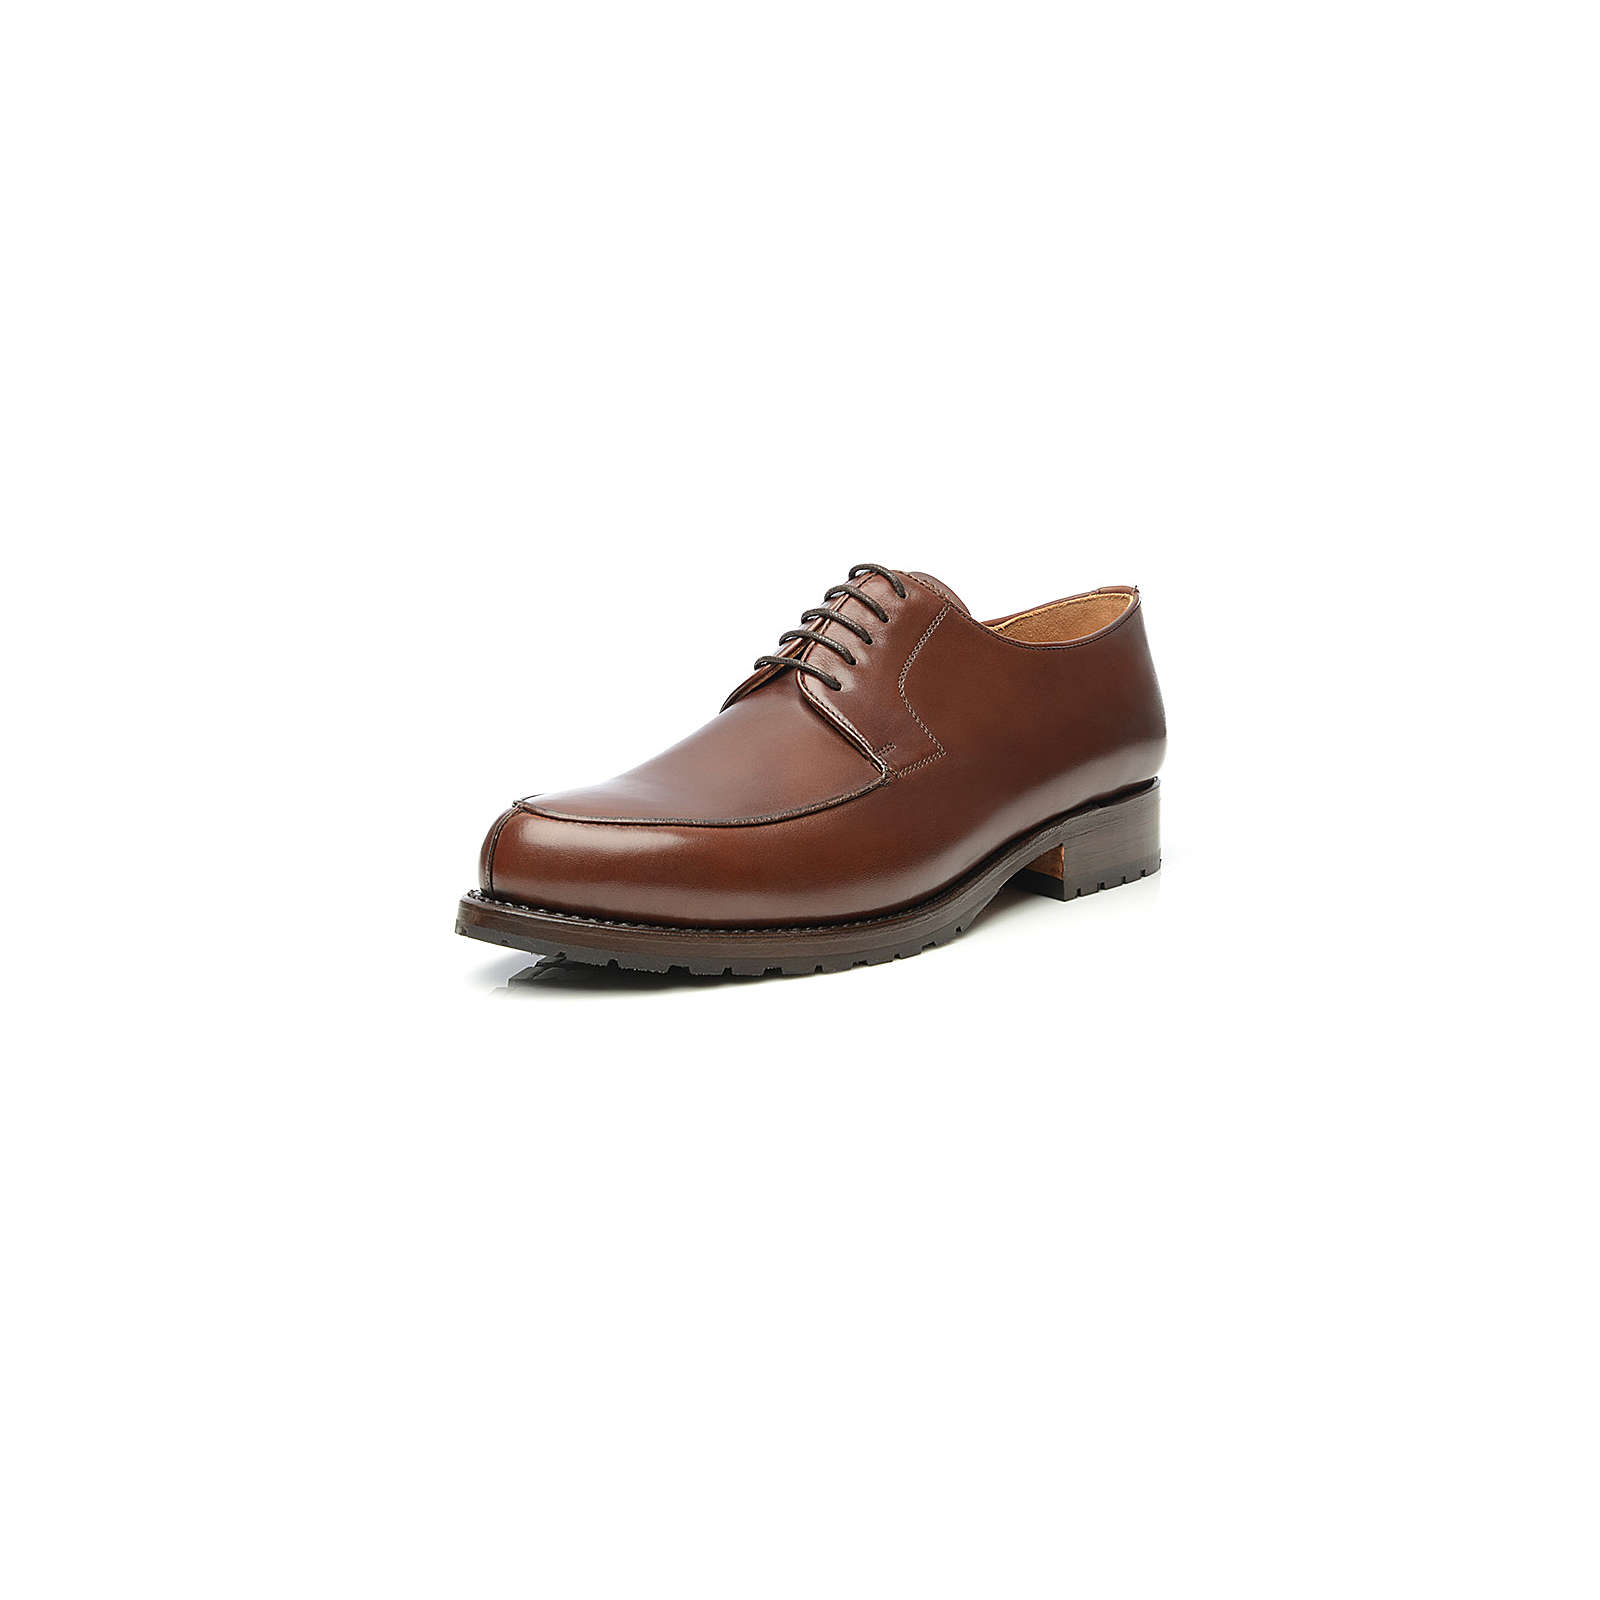 SHOEPASSION No. 596 Business Schuhe dunkelbraun Herren Gr. 46 2/3